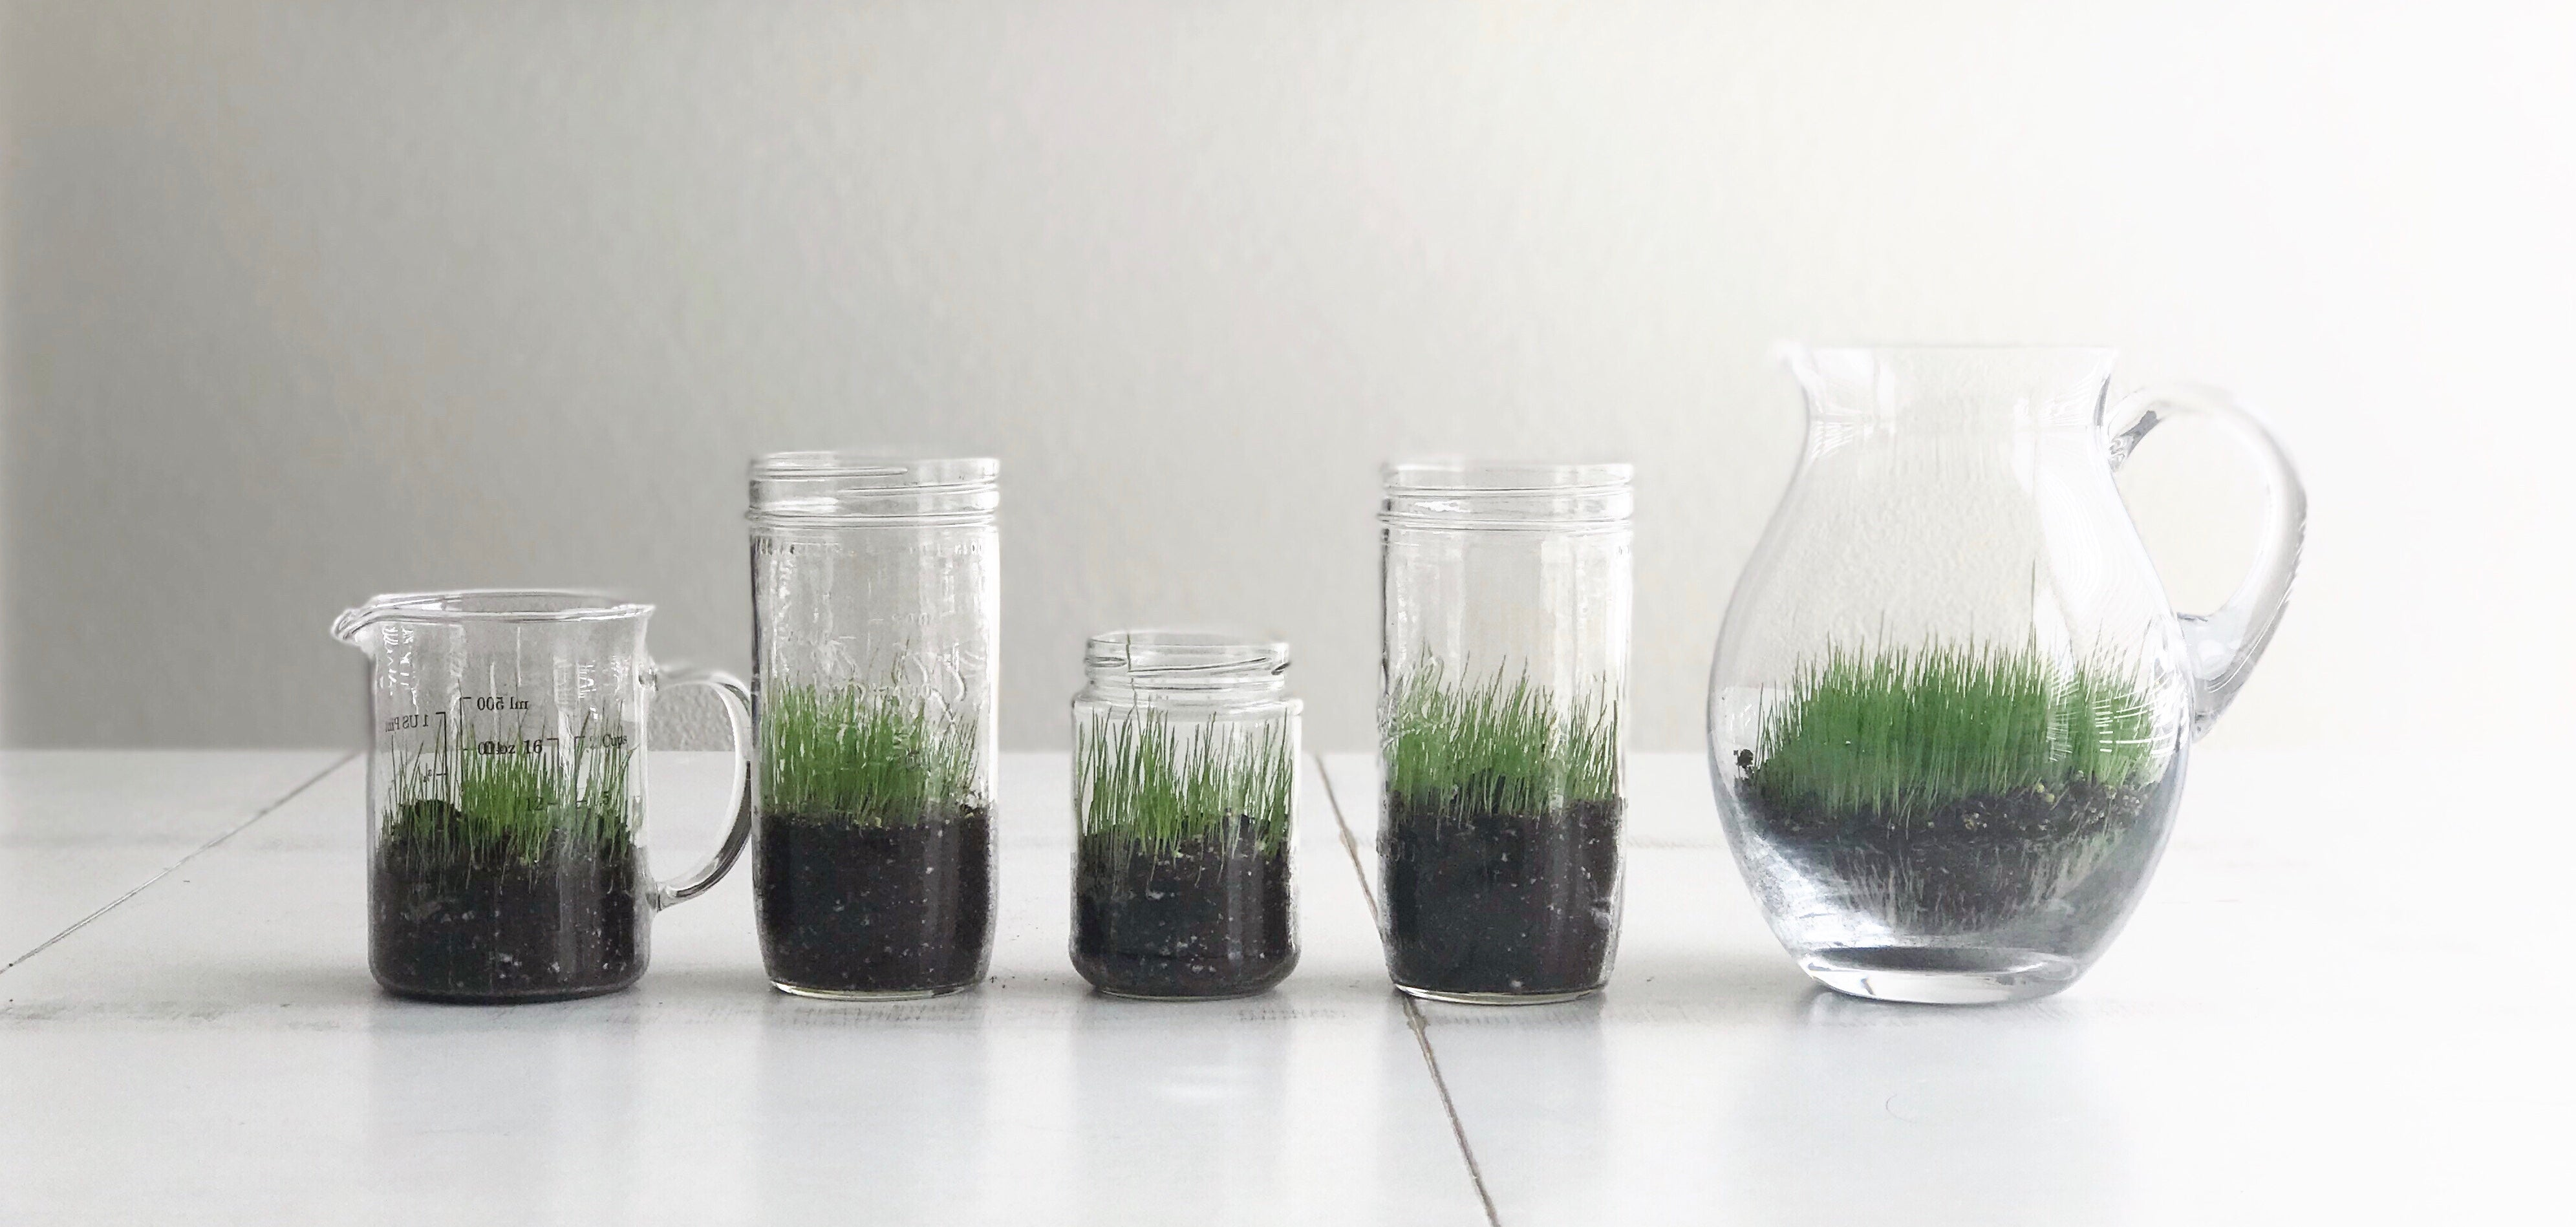 HOW TO PLANT INDOOR GRASS THIS SPRING